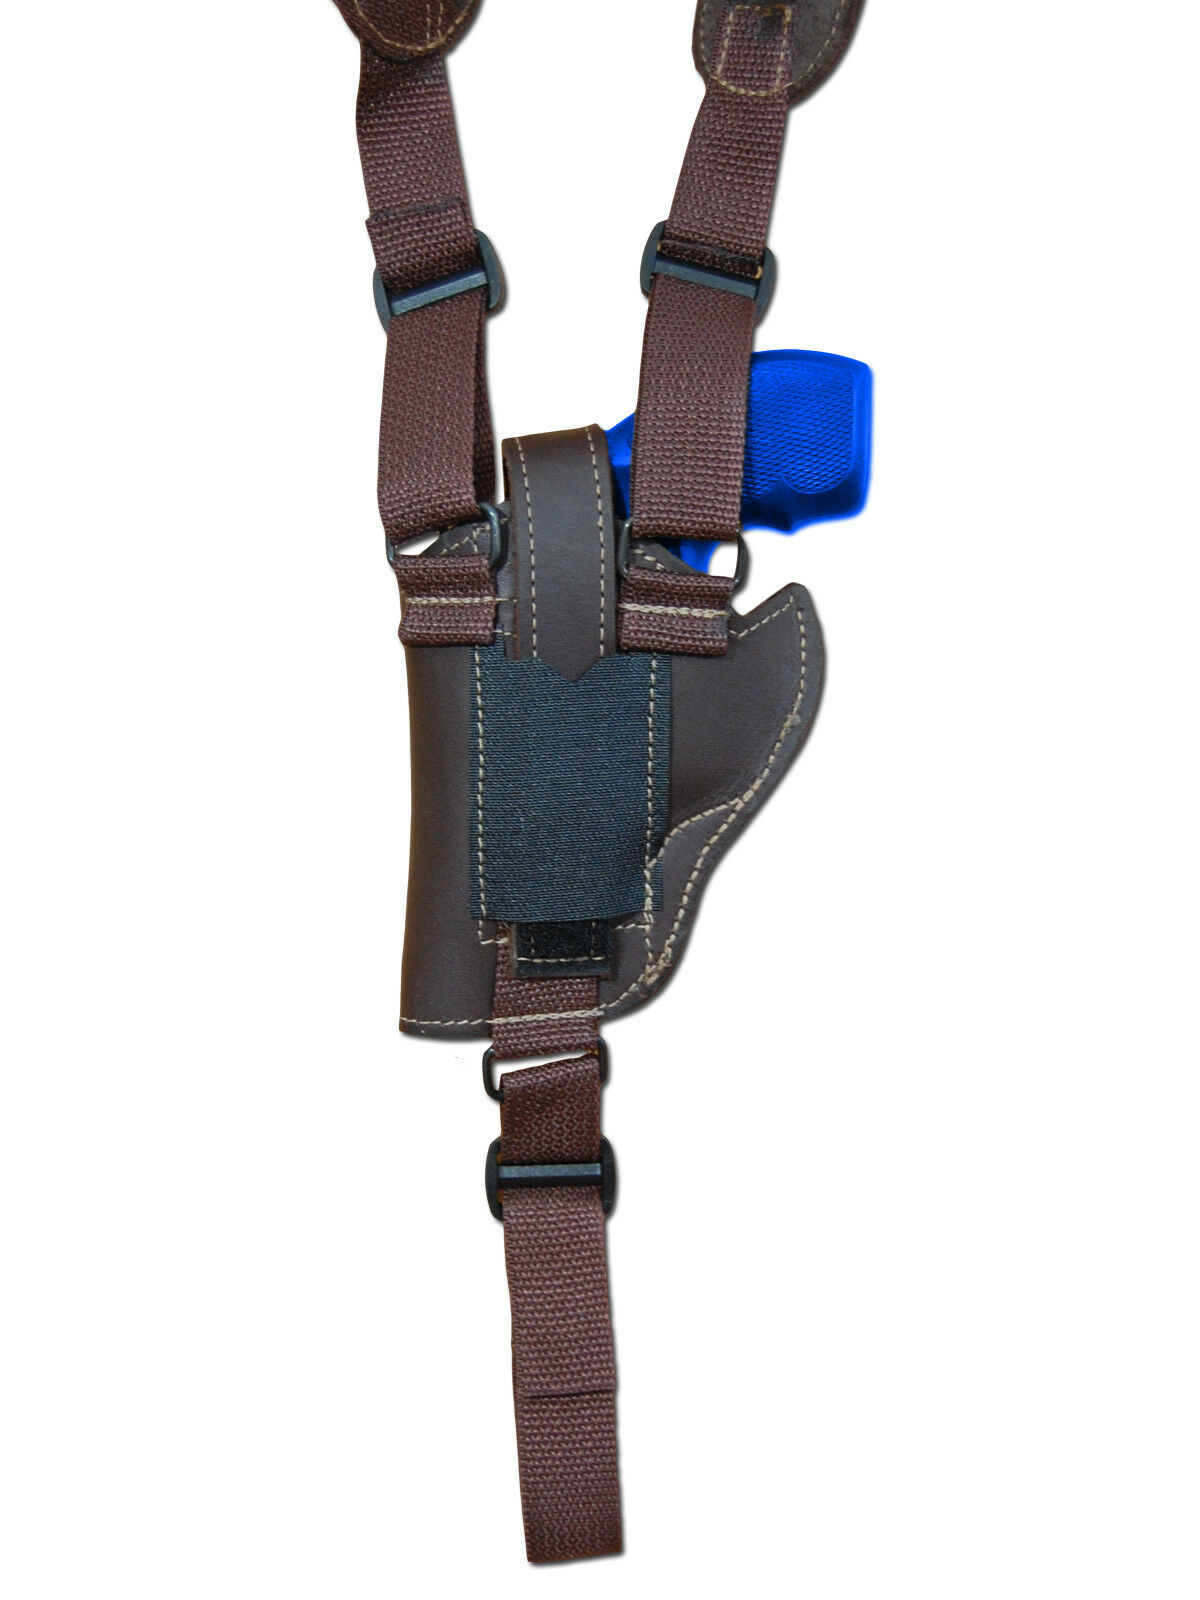 NEW Barsony Braun Leder Vertical Gun Shoulder Shoulder Shoulder Holster for S&W 2